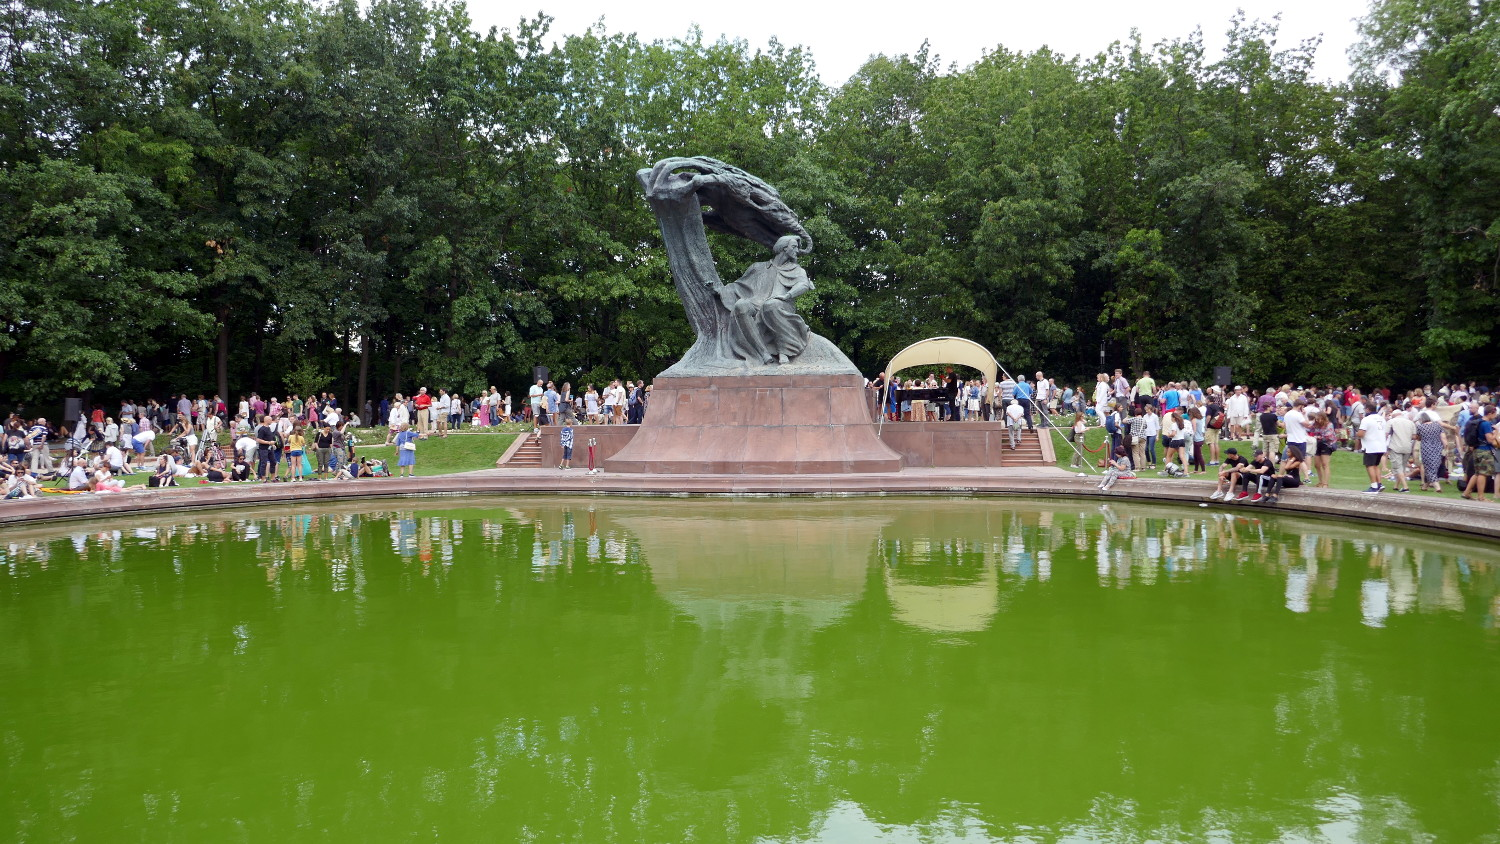 The Chopin Monument in Lazienki Park is a must for any Chopin fan! Show up for the weekly Sunday summer concert and enjoy the monument with thousands of fans!